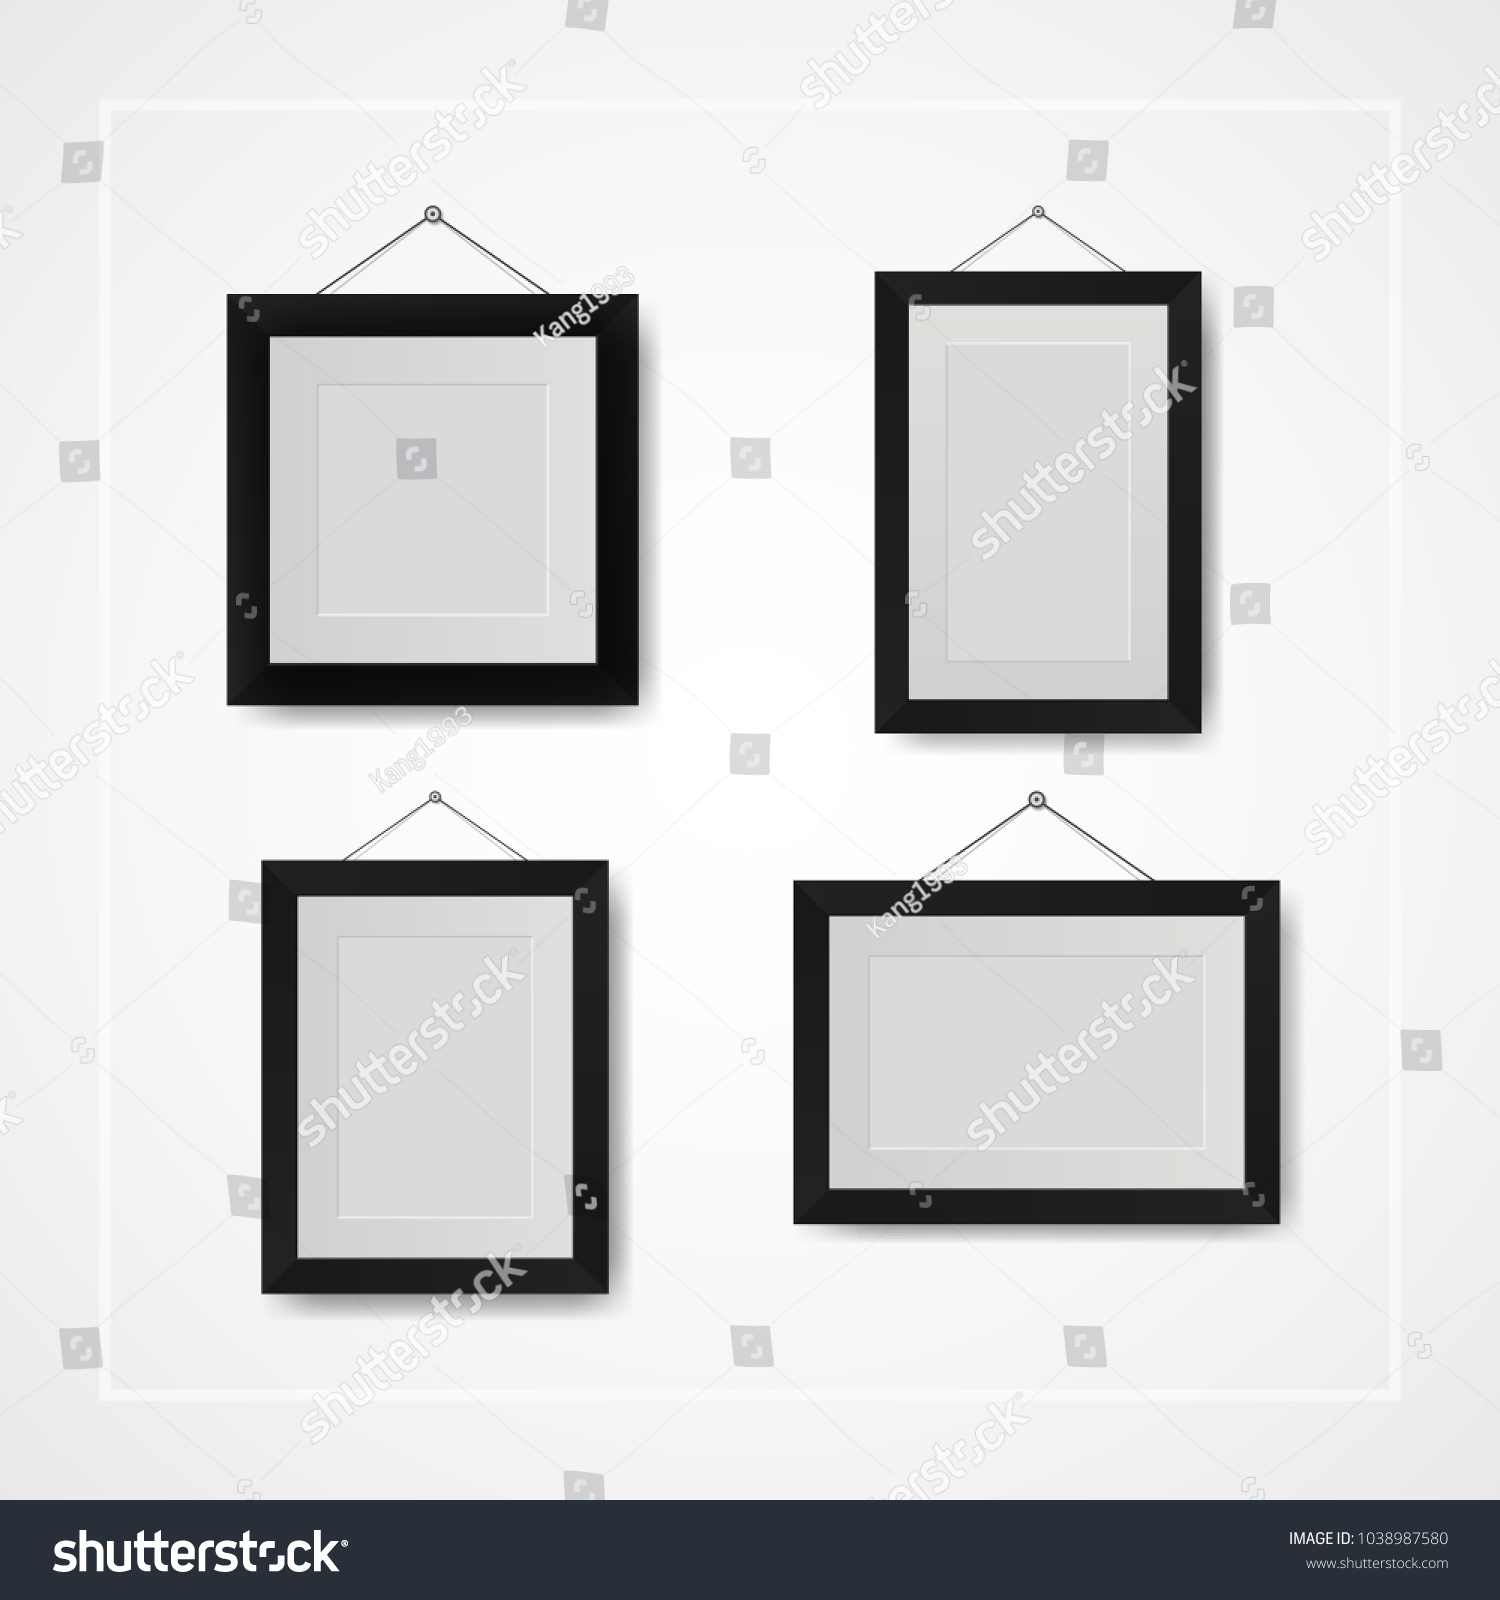 Multiple Many Small Picture Photo Frames Stock Vector (Royalty Free ...